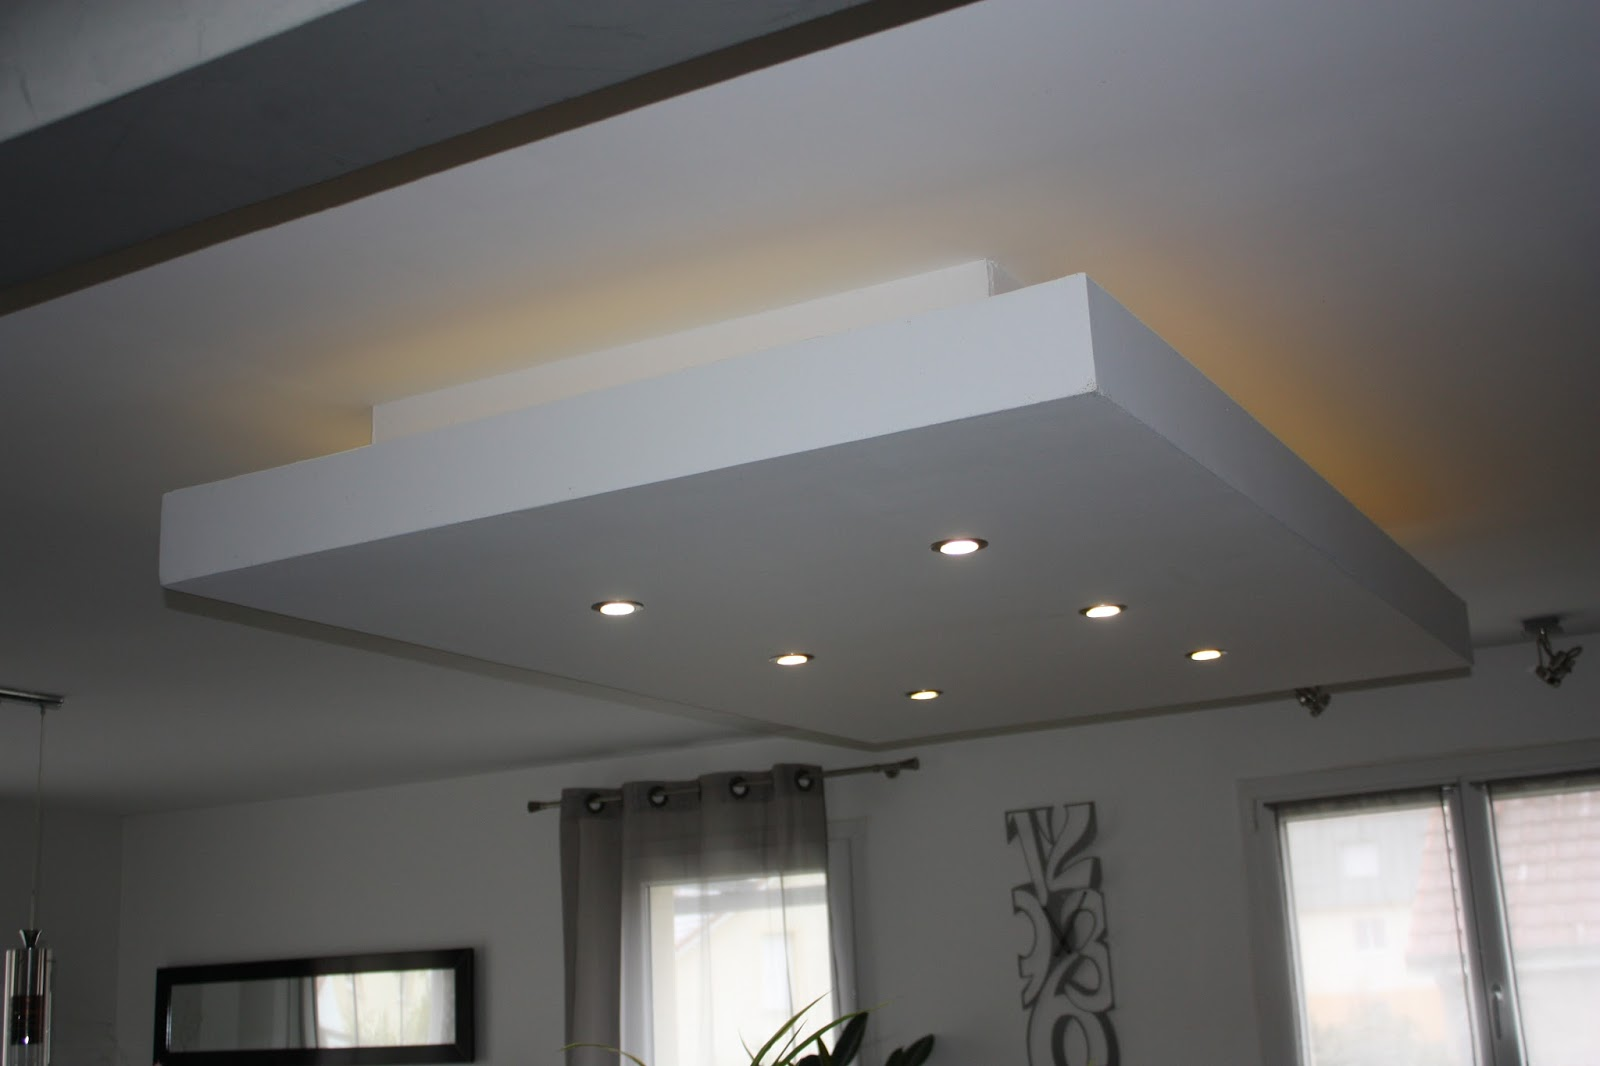 Eclairage led plafond suspendu for Plafond suspente